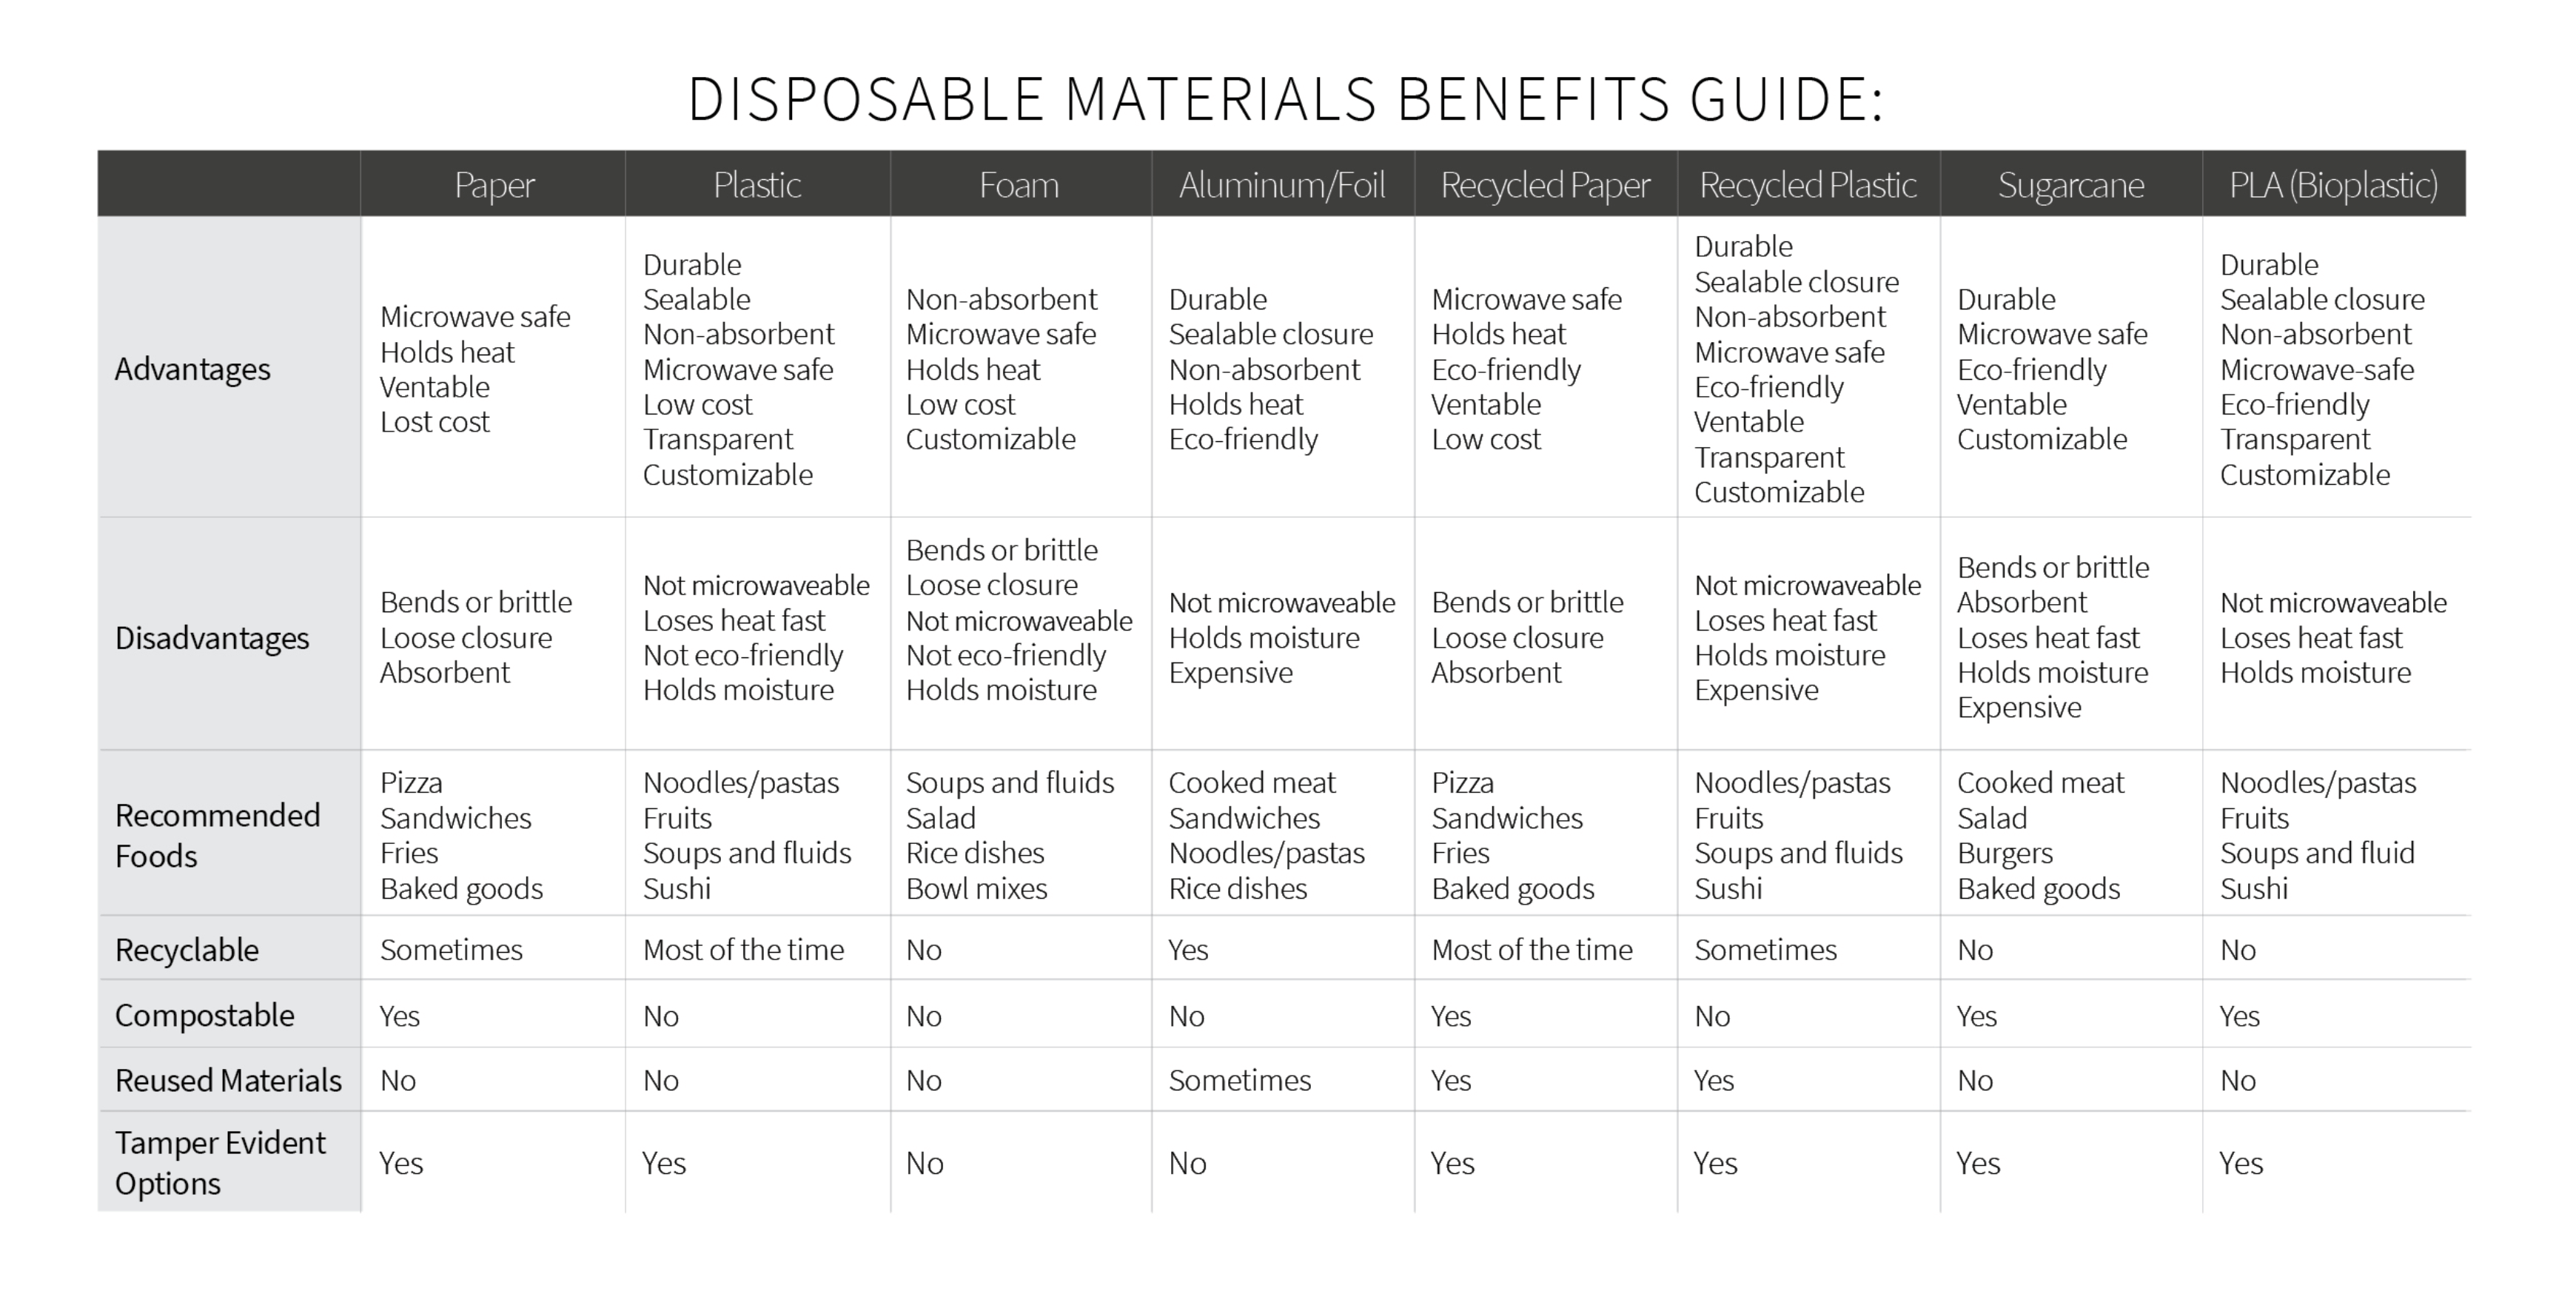 Disposible Materials Benefit Guide: Source http://blog.etundra.com/in-the-restaurant/increase-sales-by-properly-packaging-to-go-meals/